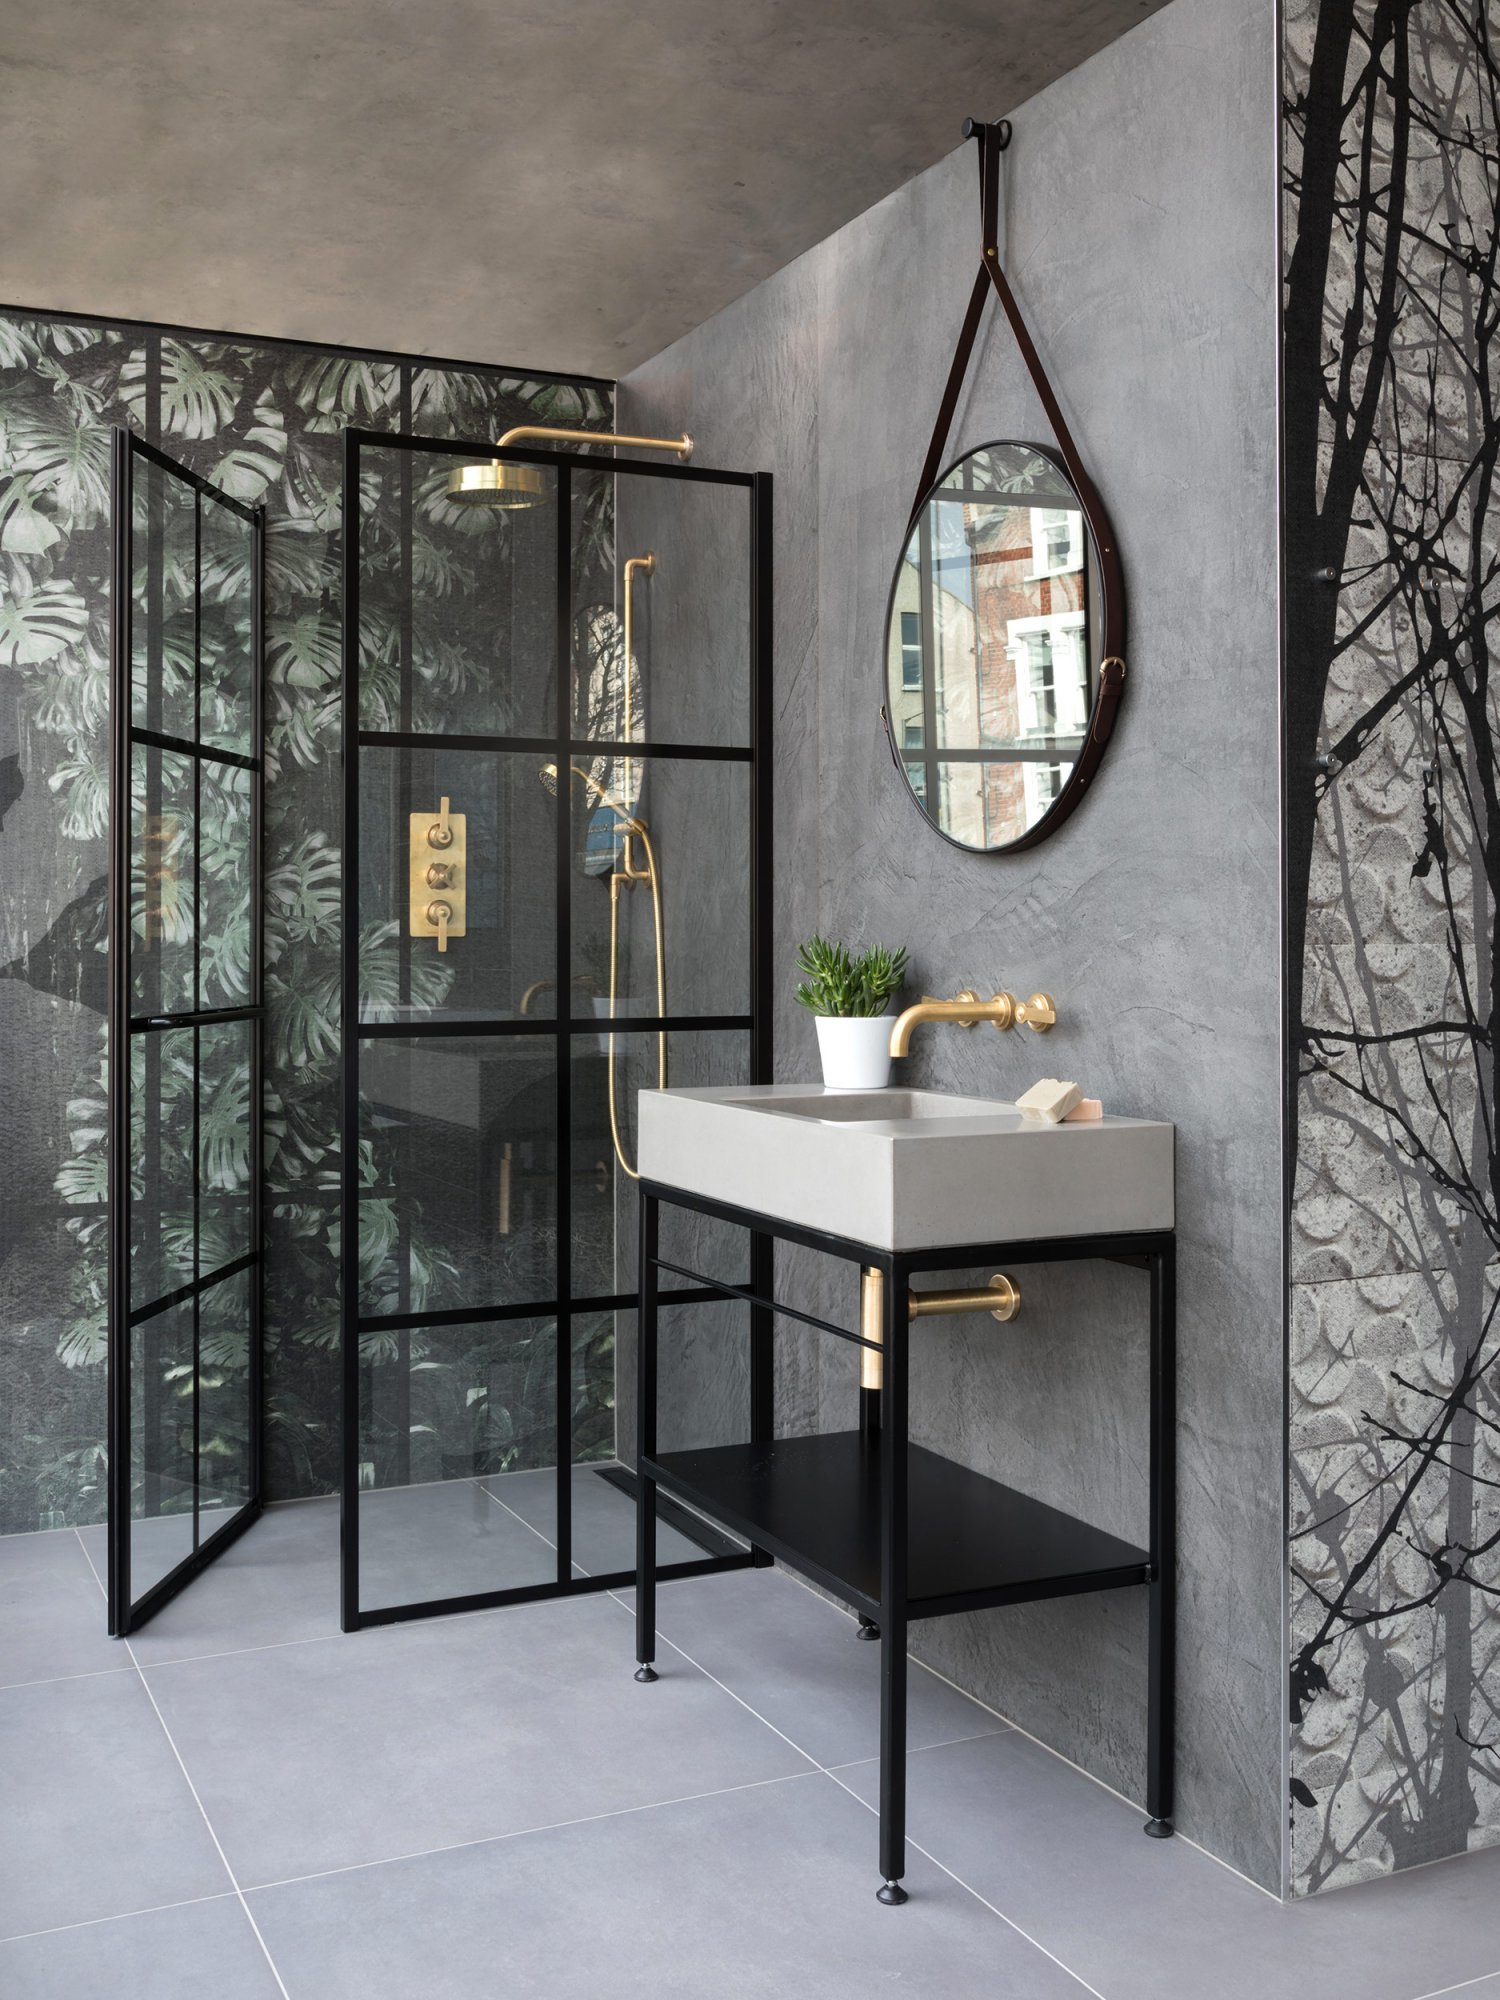 west one bathrooms luxury bathrooms london. Black Bedroom Furniture Sets. Home Design Ideas